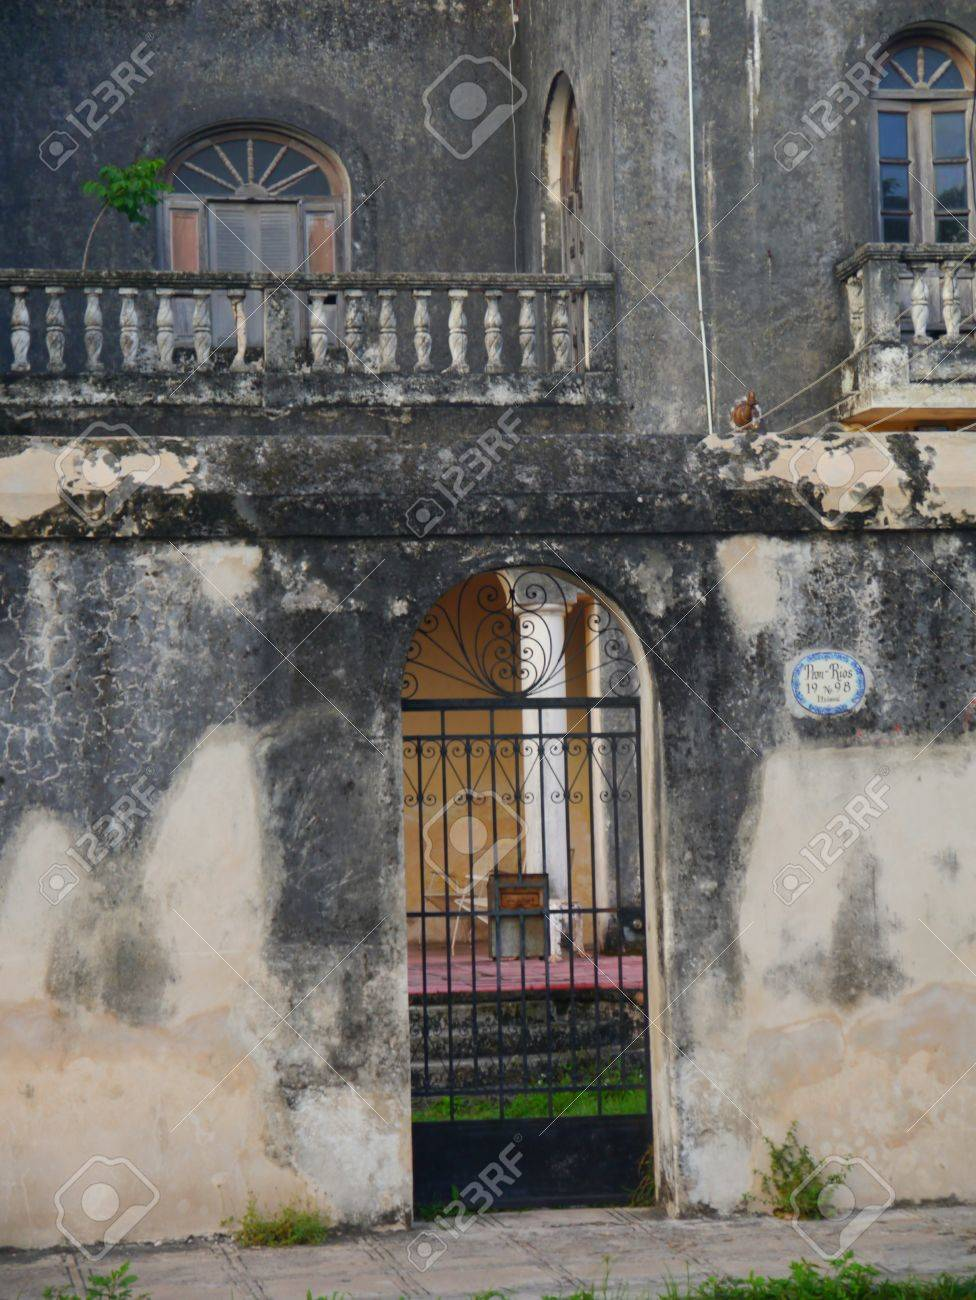 mexico houses colonial old style merida stock photo 42534660 - Old Style Houses